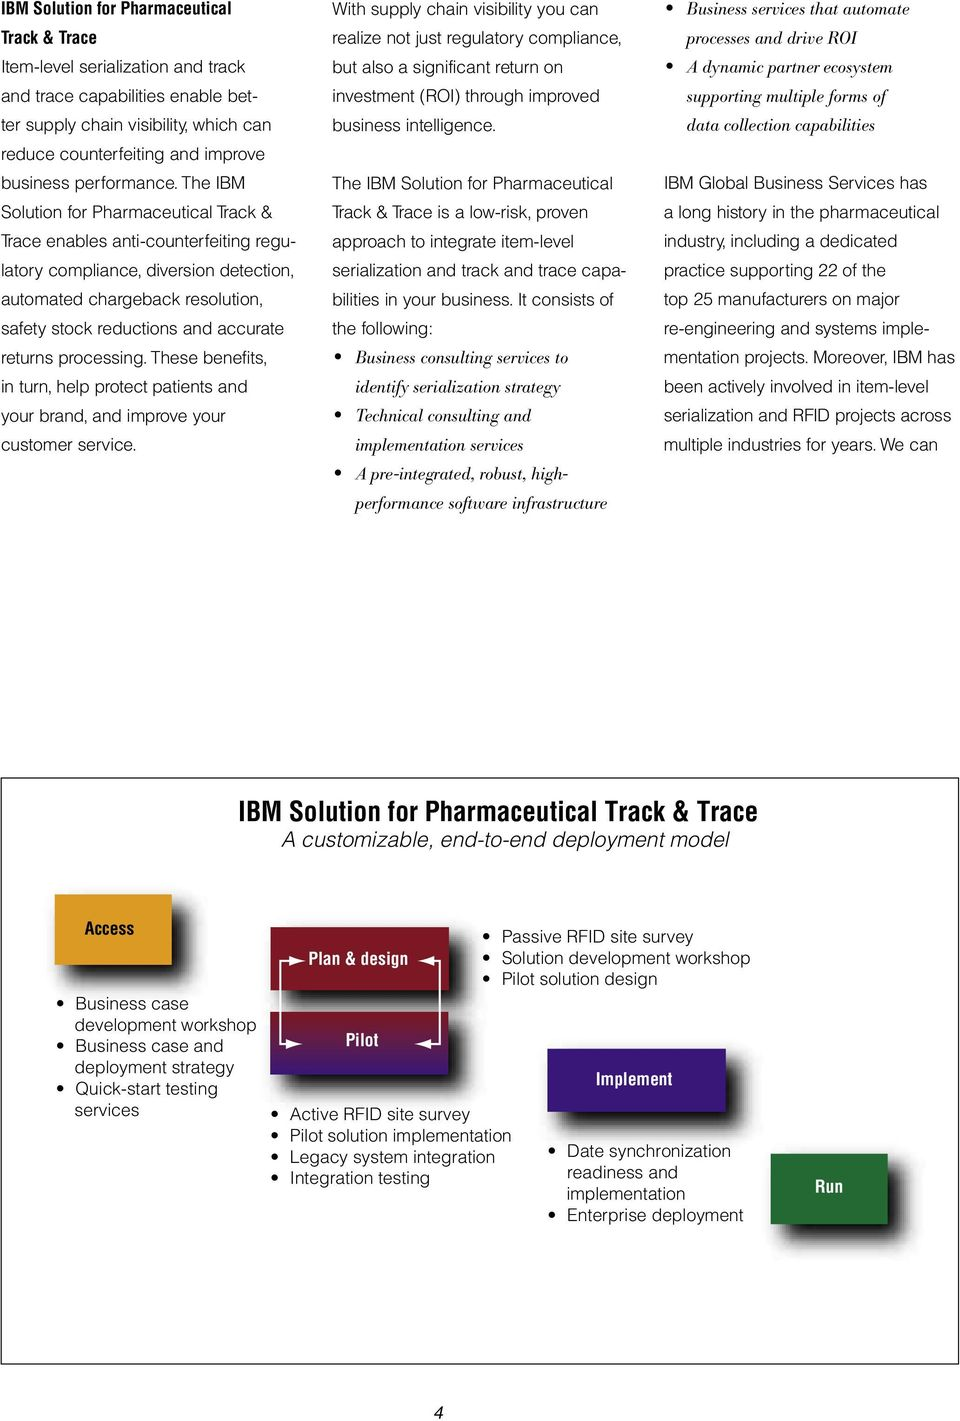 The IBM Solution for Pharmaceutical Track & Trace enables anti-counterfeiting regulatory compliance, diversion detection, automated chargeback resolution, safety stock reductions and accurate returns